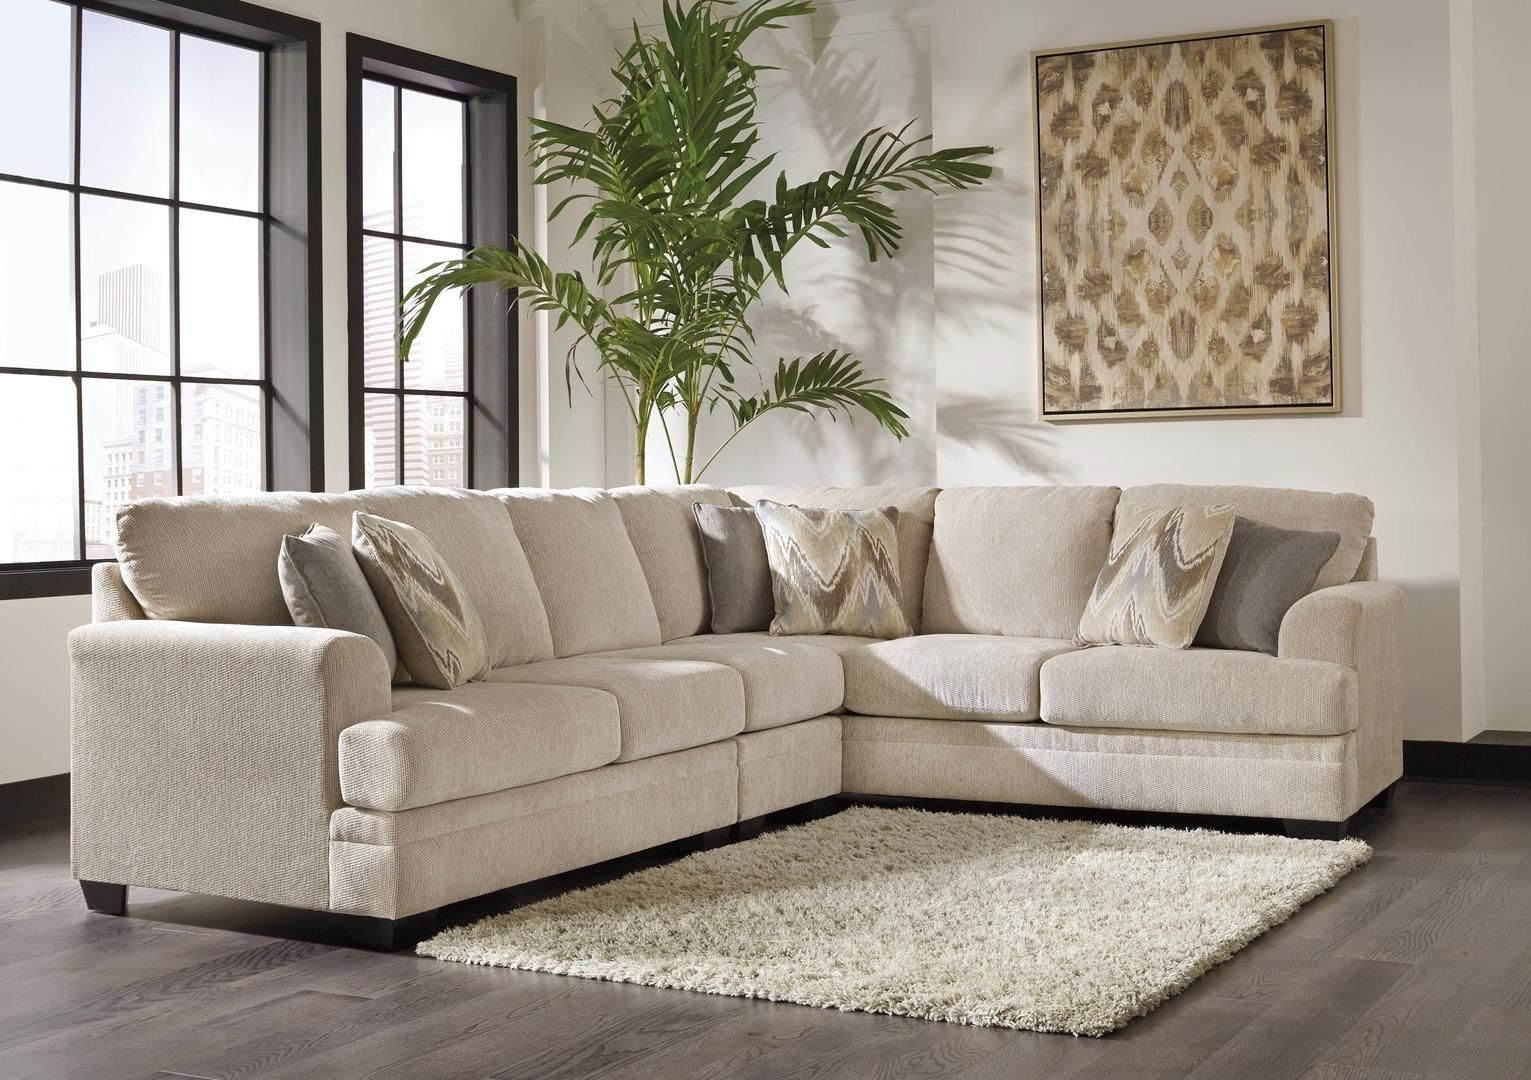 Ameer 81806 55 46 67 3 Piece Fabric Sectional Sofa With Left Arm Within Malbry Point 3 Piece Sectionals With Laf Chaise (Image 10 of 25)